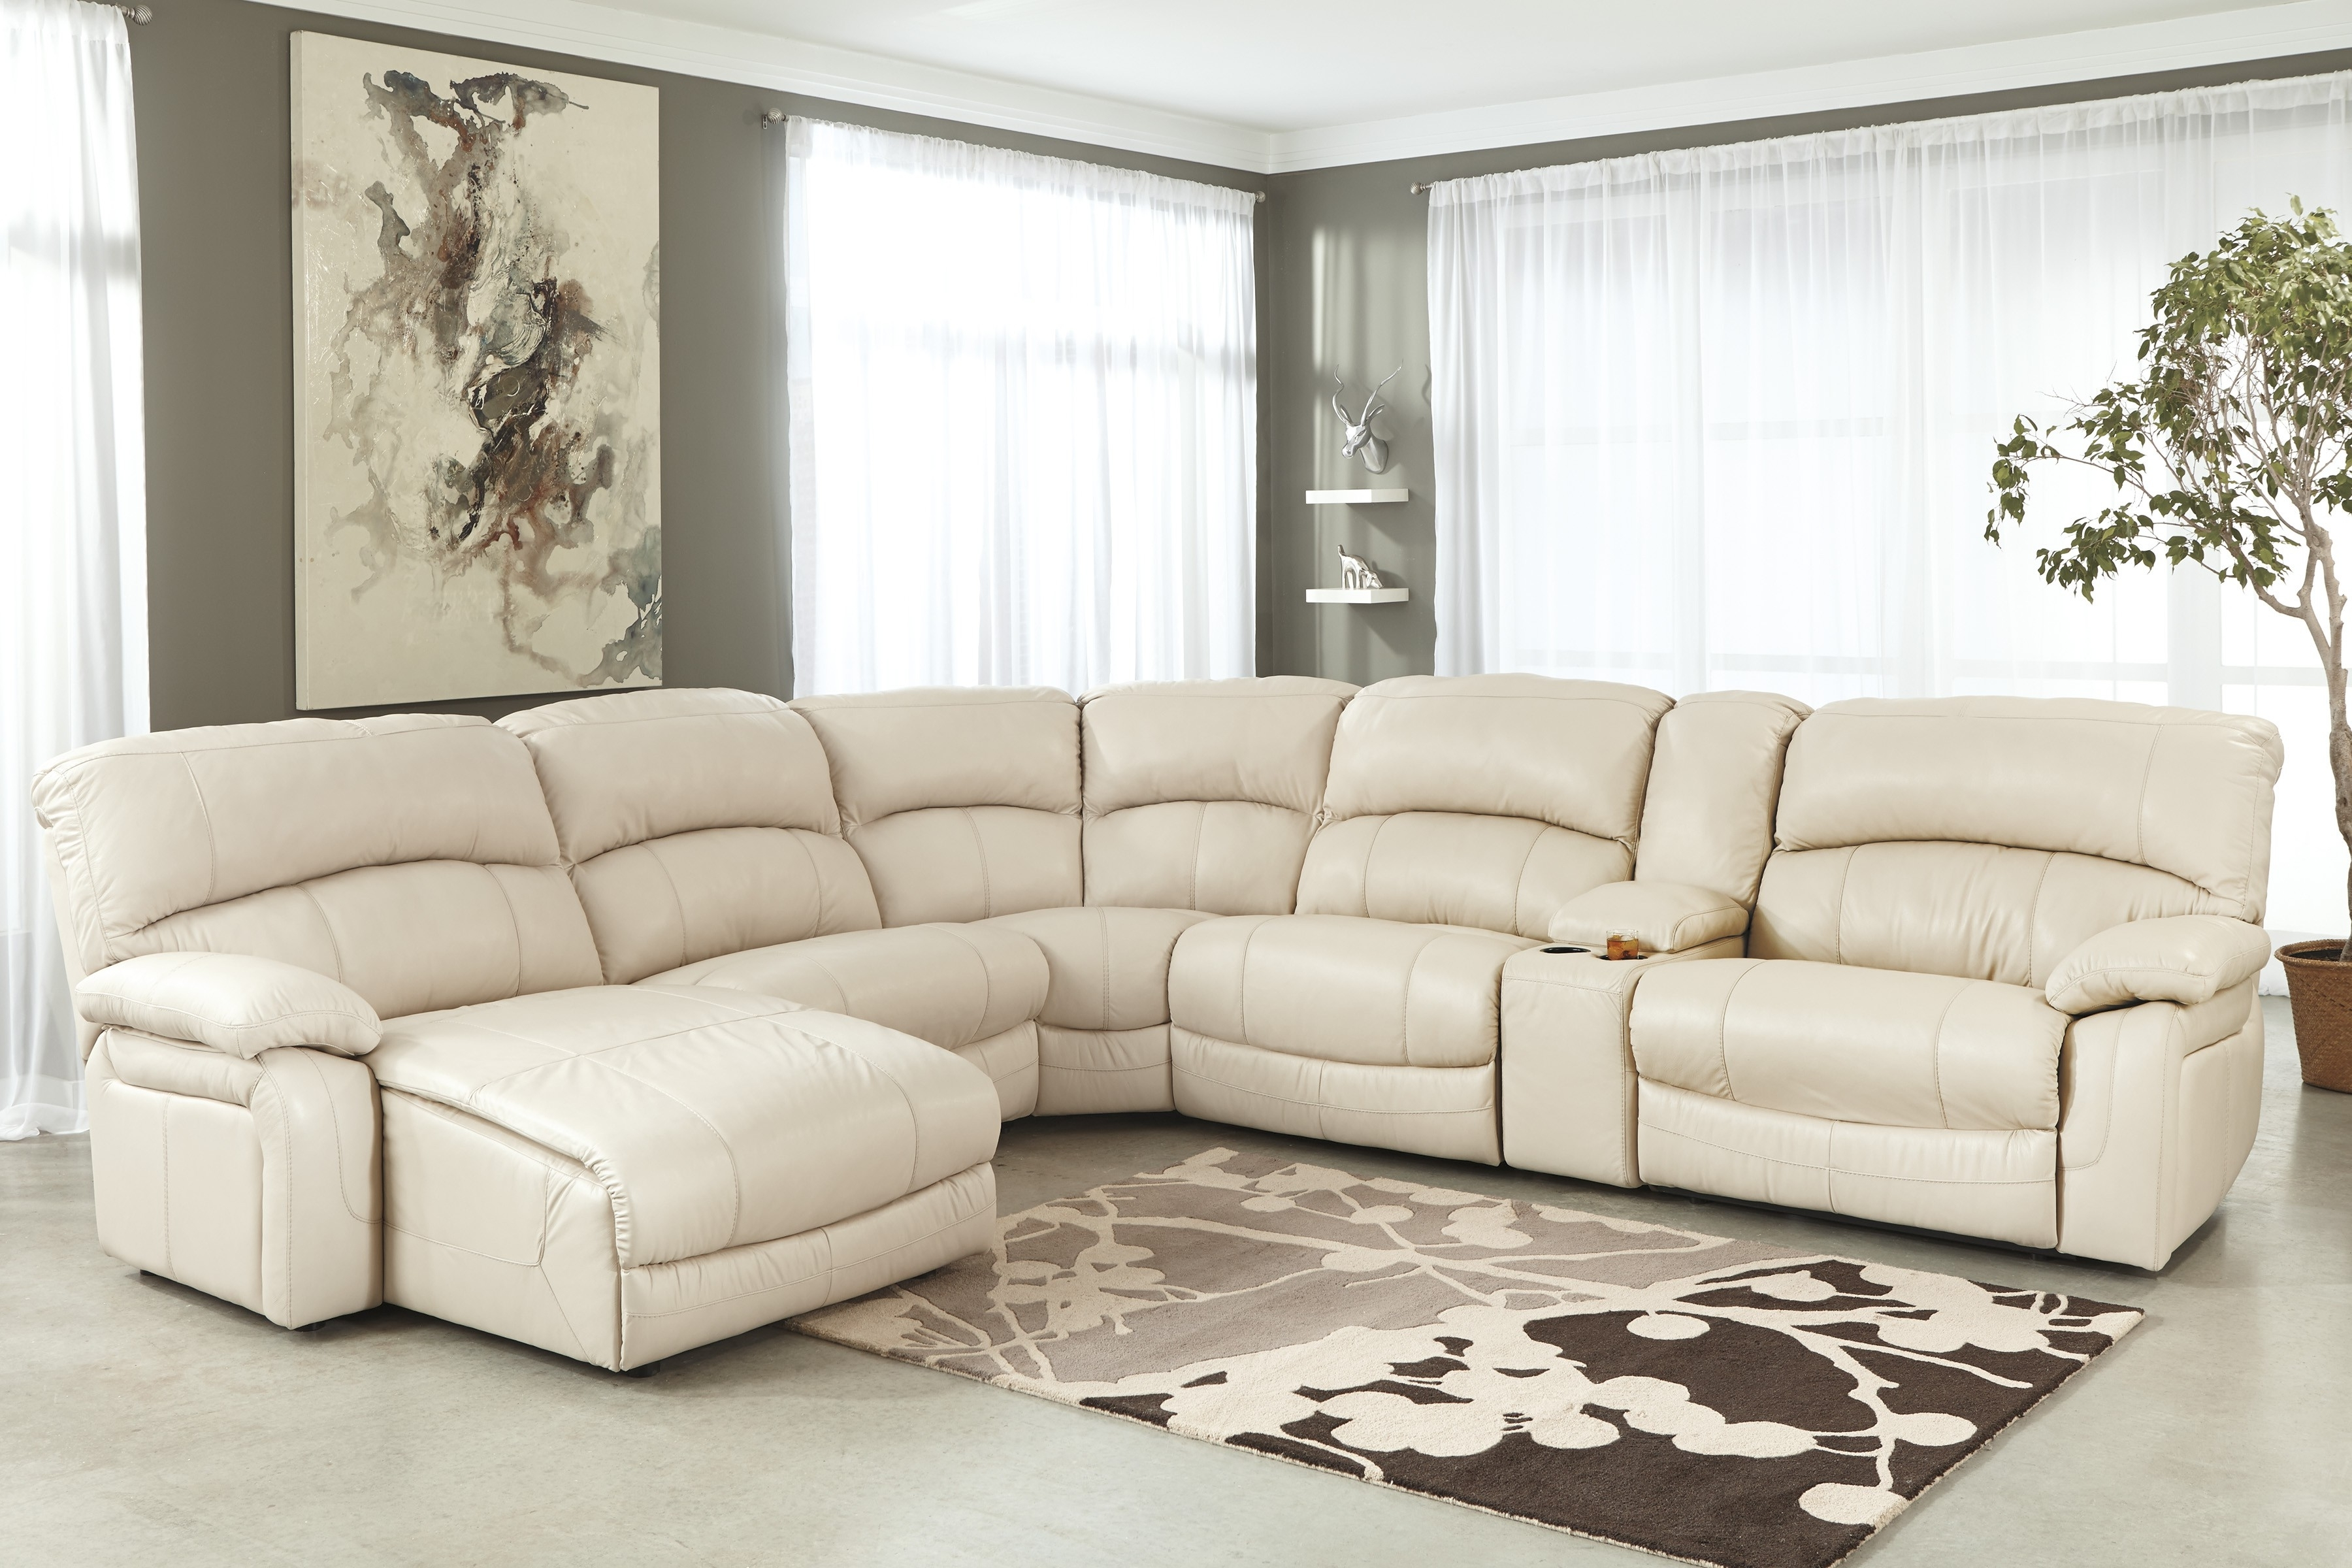 Reclining U Shaped Sectionals Inside Popular Sectional Sofa Design: Most Inspired White Leather Sectional Sofa (View 13 of 20)